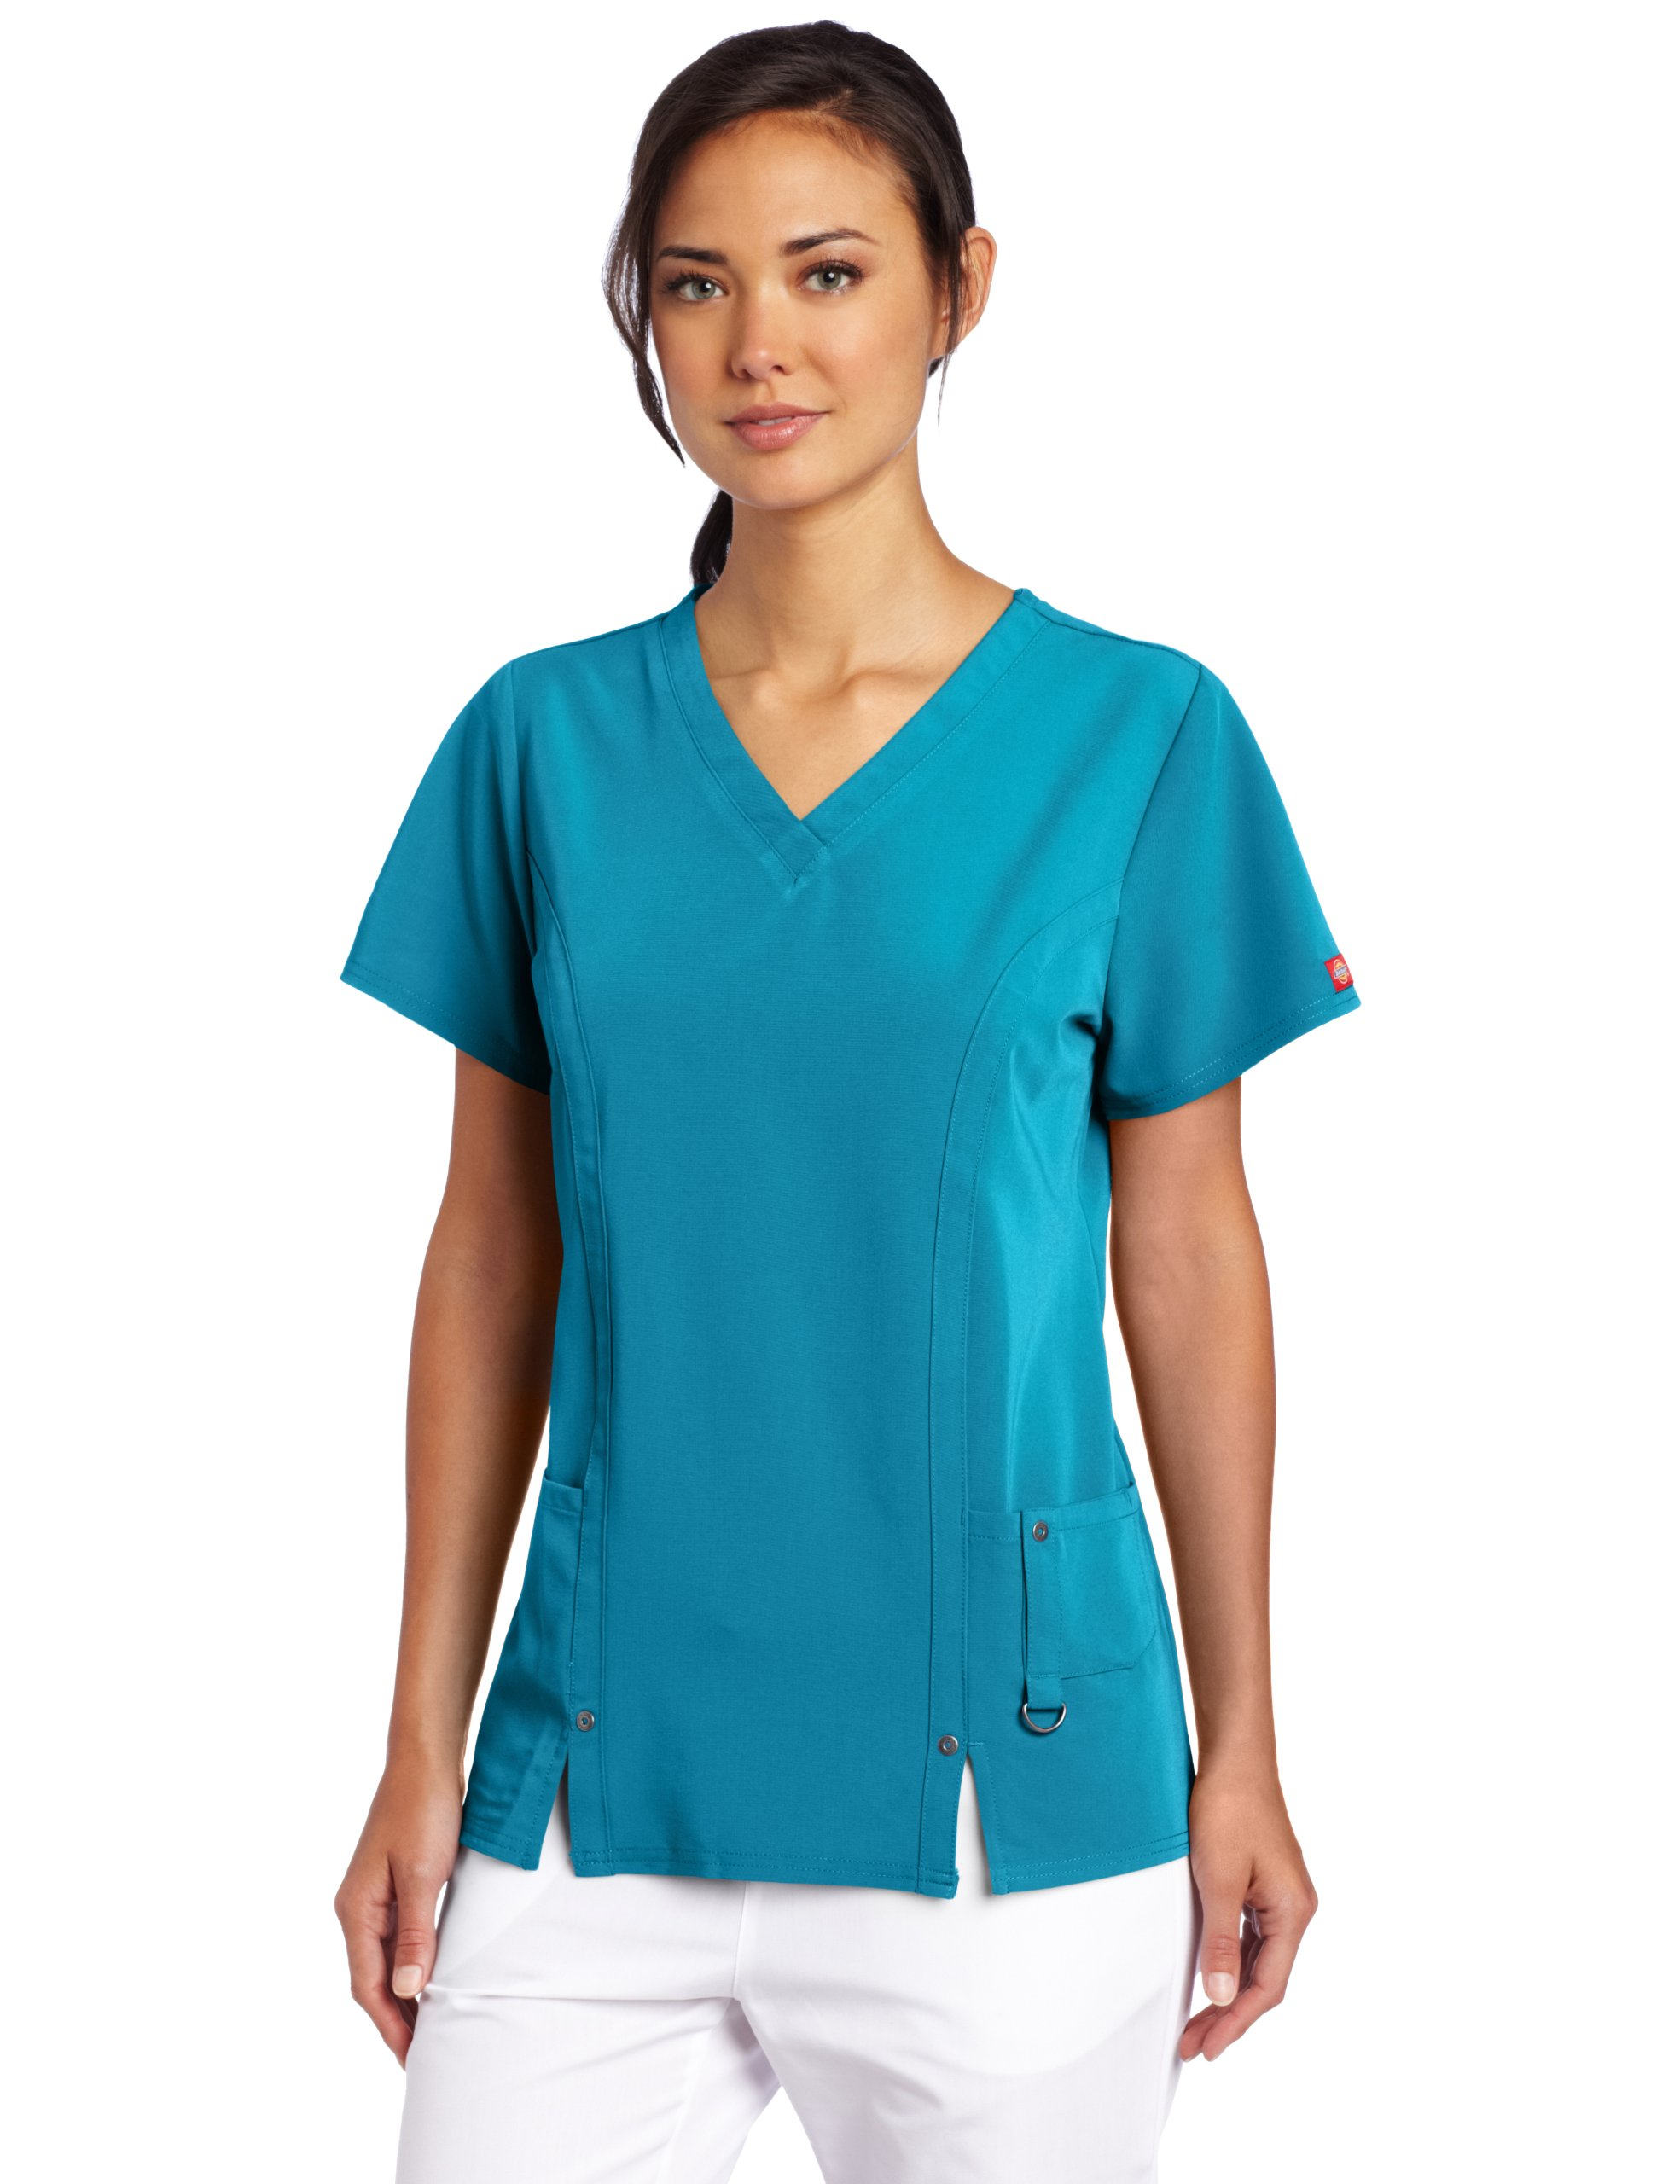 Dickies Scrubs Women's Xtreme Stretch Junior Fit V-Neck Shirt, Teal, XX-Large